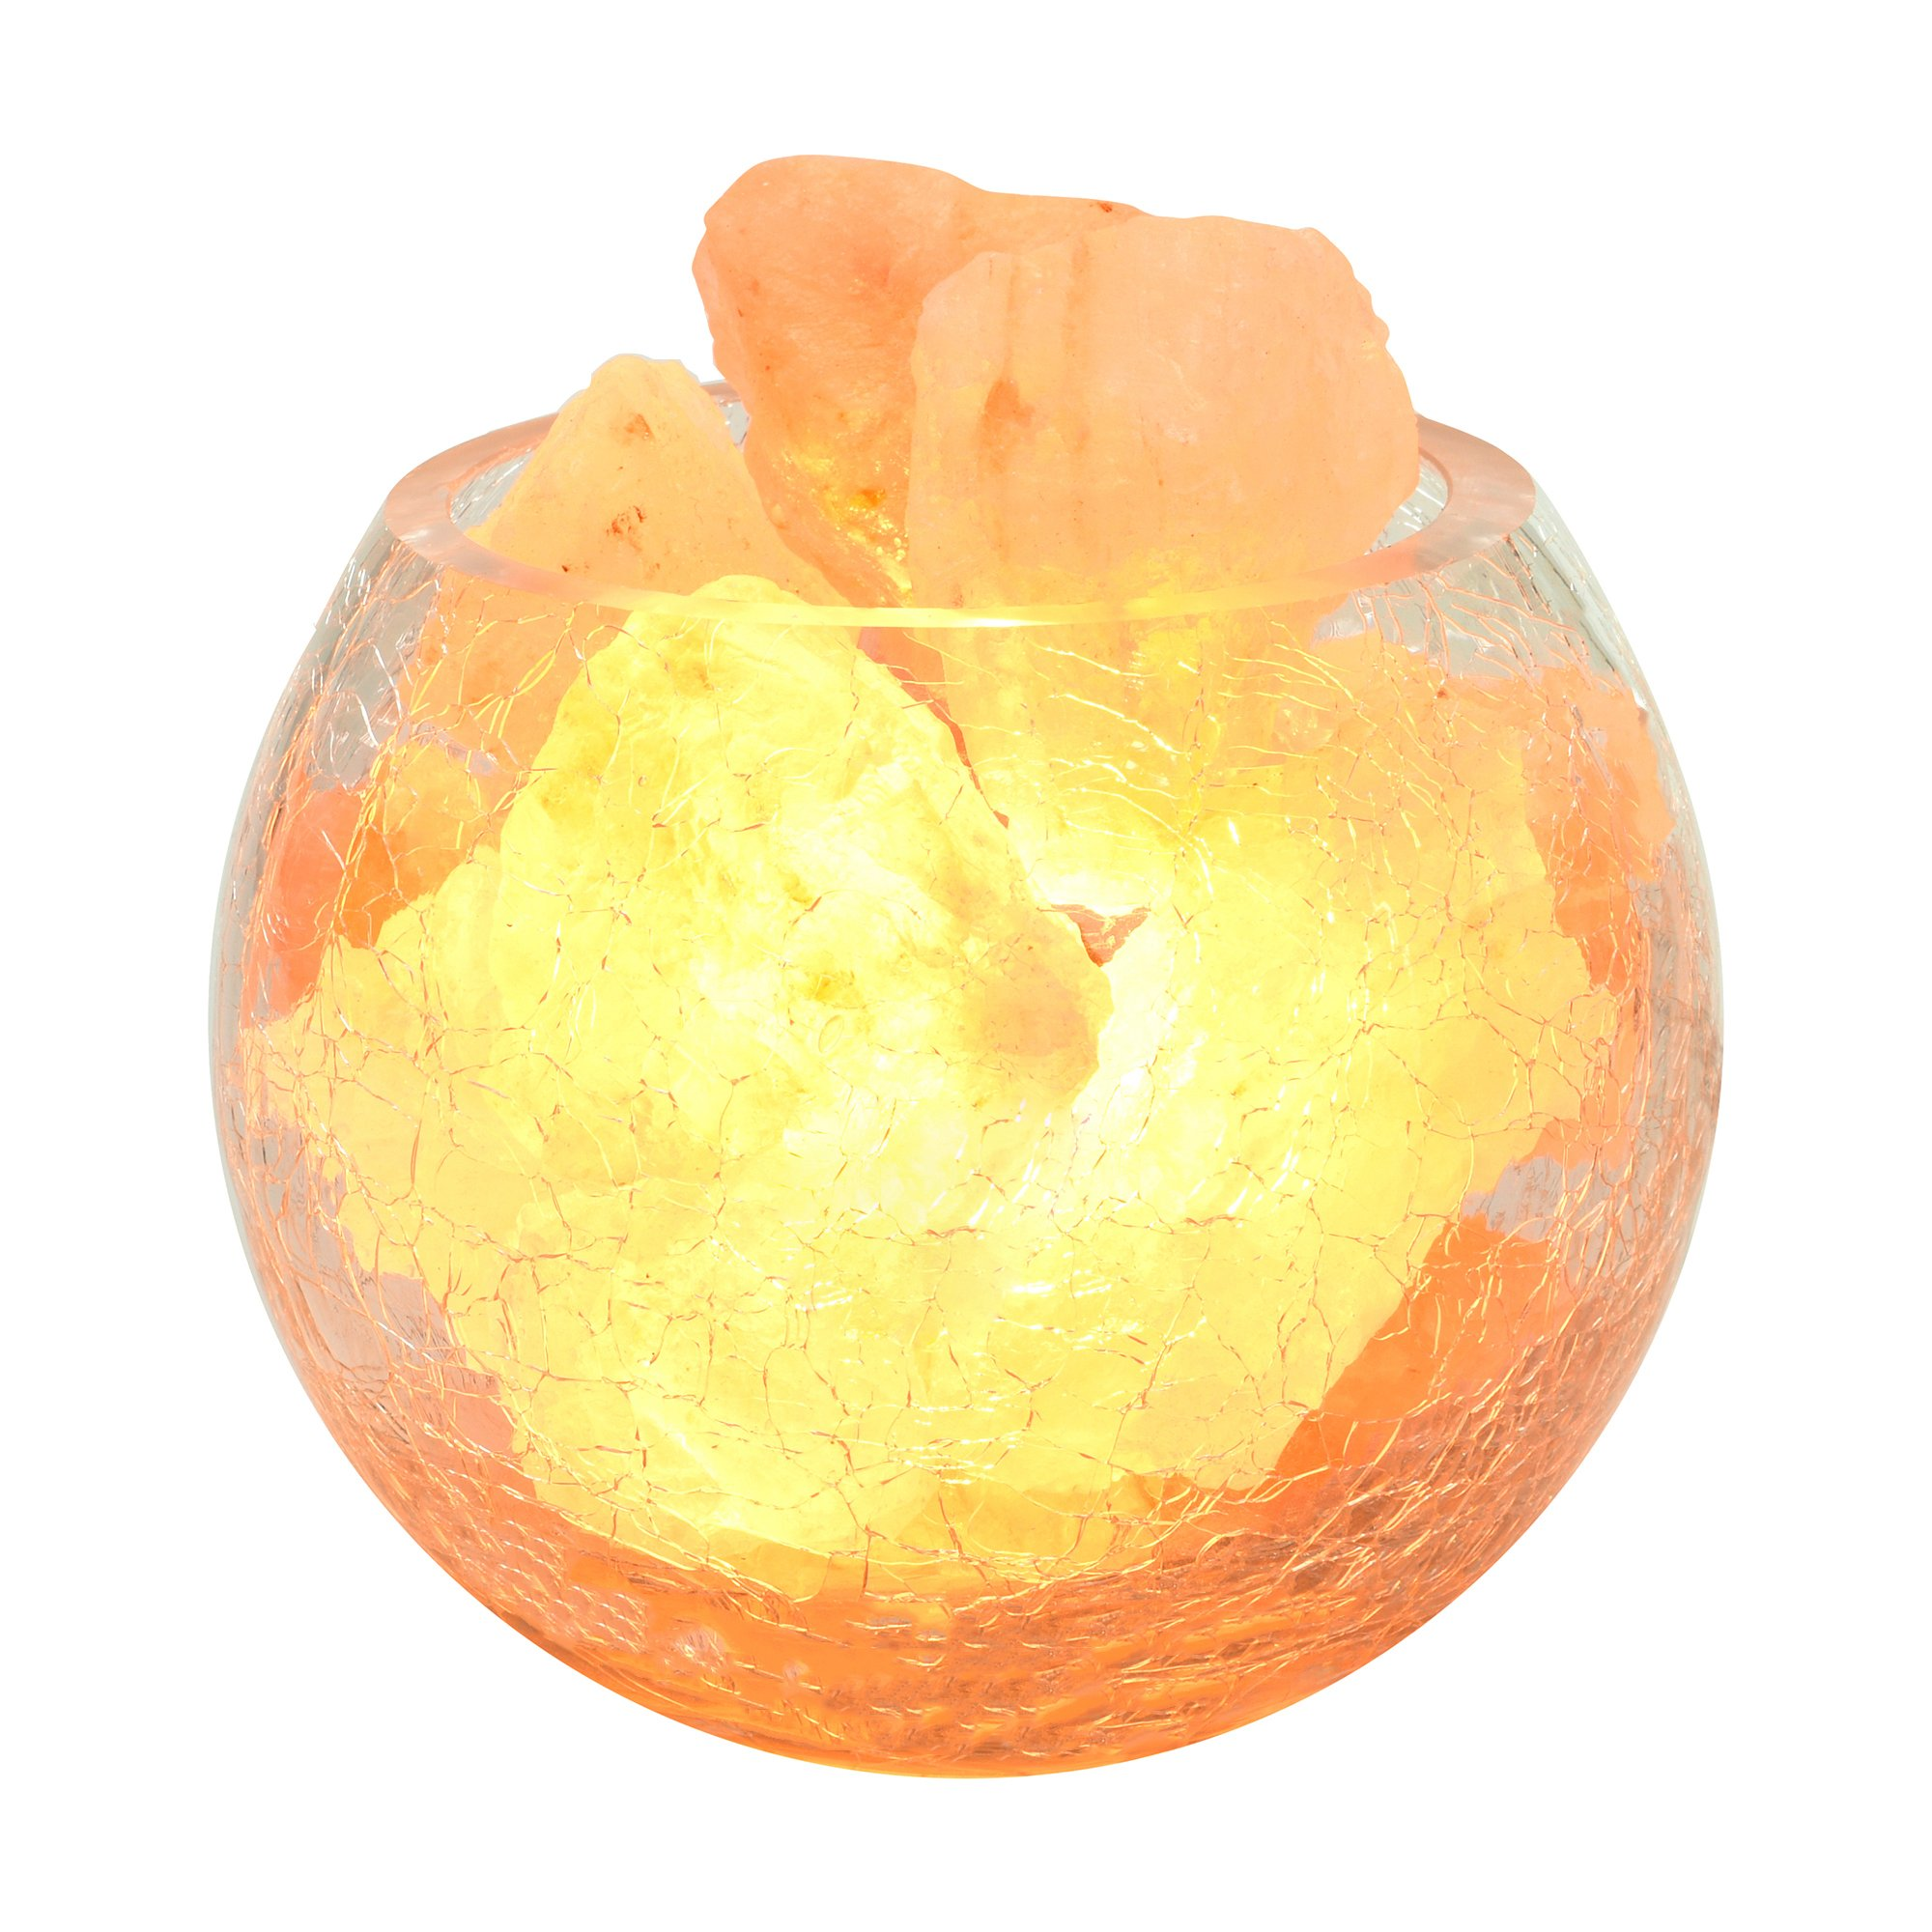 Natural Himalayan Salt Lamp Ionic Rock Dimmer Control Crystal Generate Negative Ions Salt Light For Bedroom Decorating SPA With 2pcsx15W Bulbs(10x10cm)